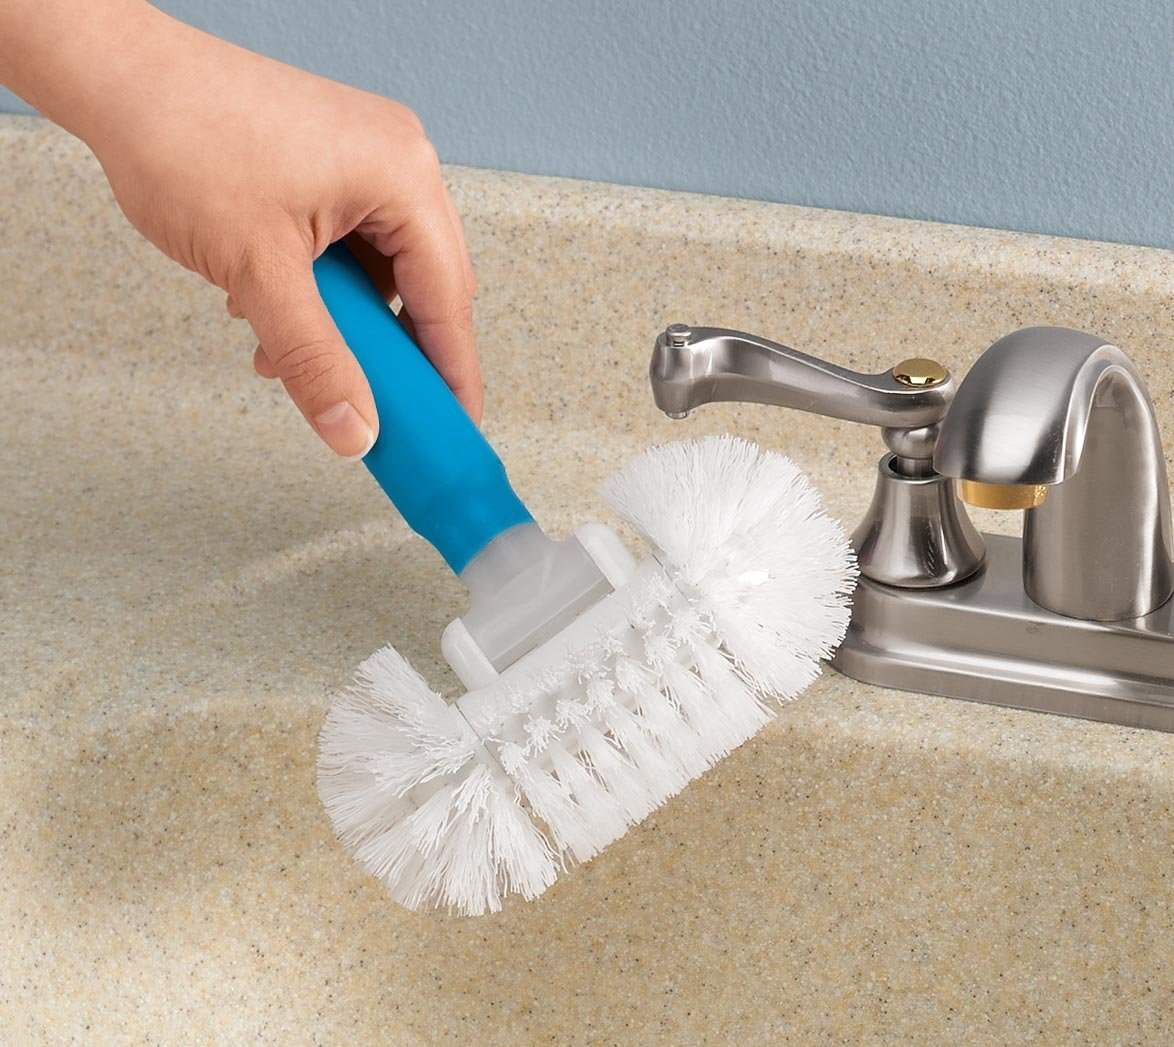 Amazon.com : Telescopic Tub U0026 Tile Scrubber : Cleaning Brushes : Office  Products